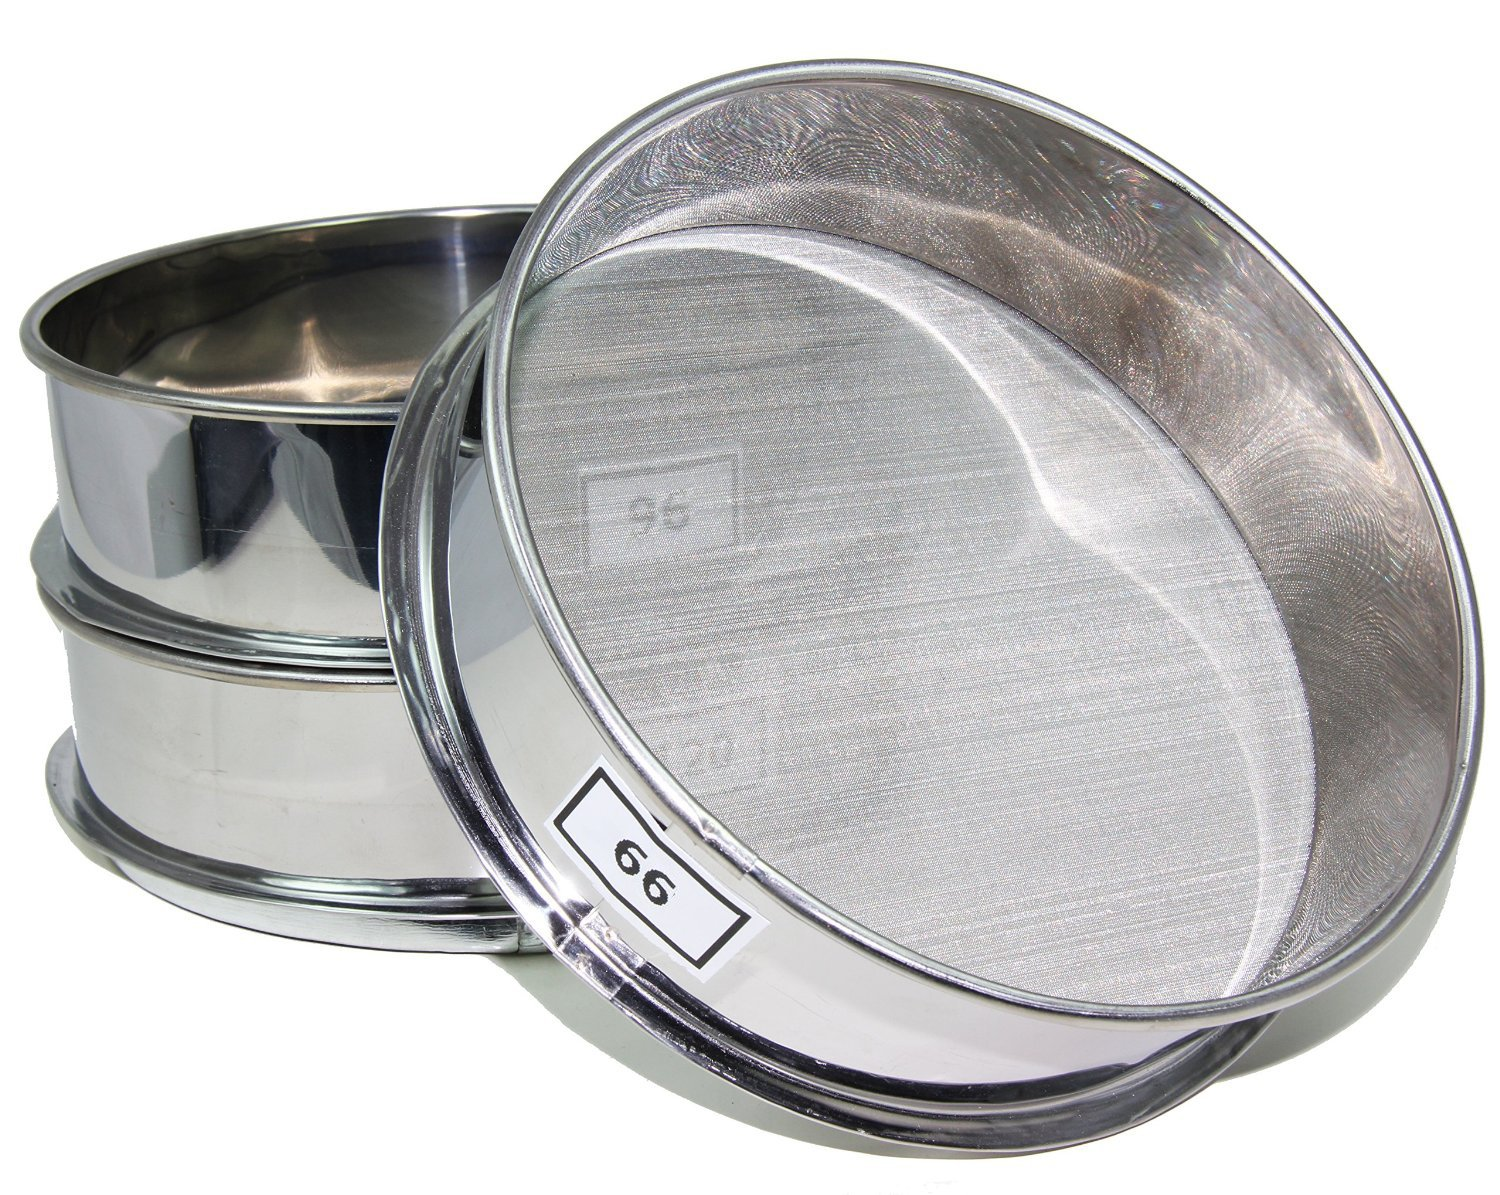 E-ONSALE Aluminum Herbal Pollen Set of 3 Screen Size Stackable Sifter 66, 96, 120 Micron Hash Extractor Sifter Shaker (66, 96, 120)